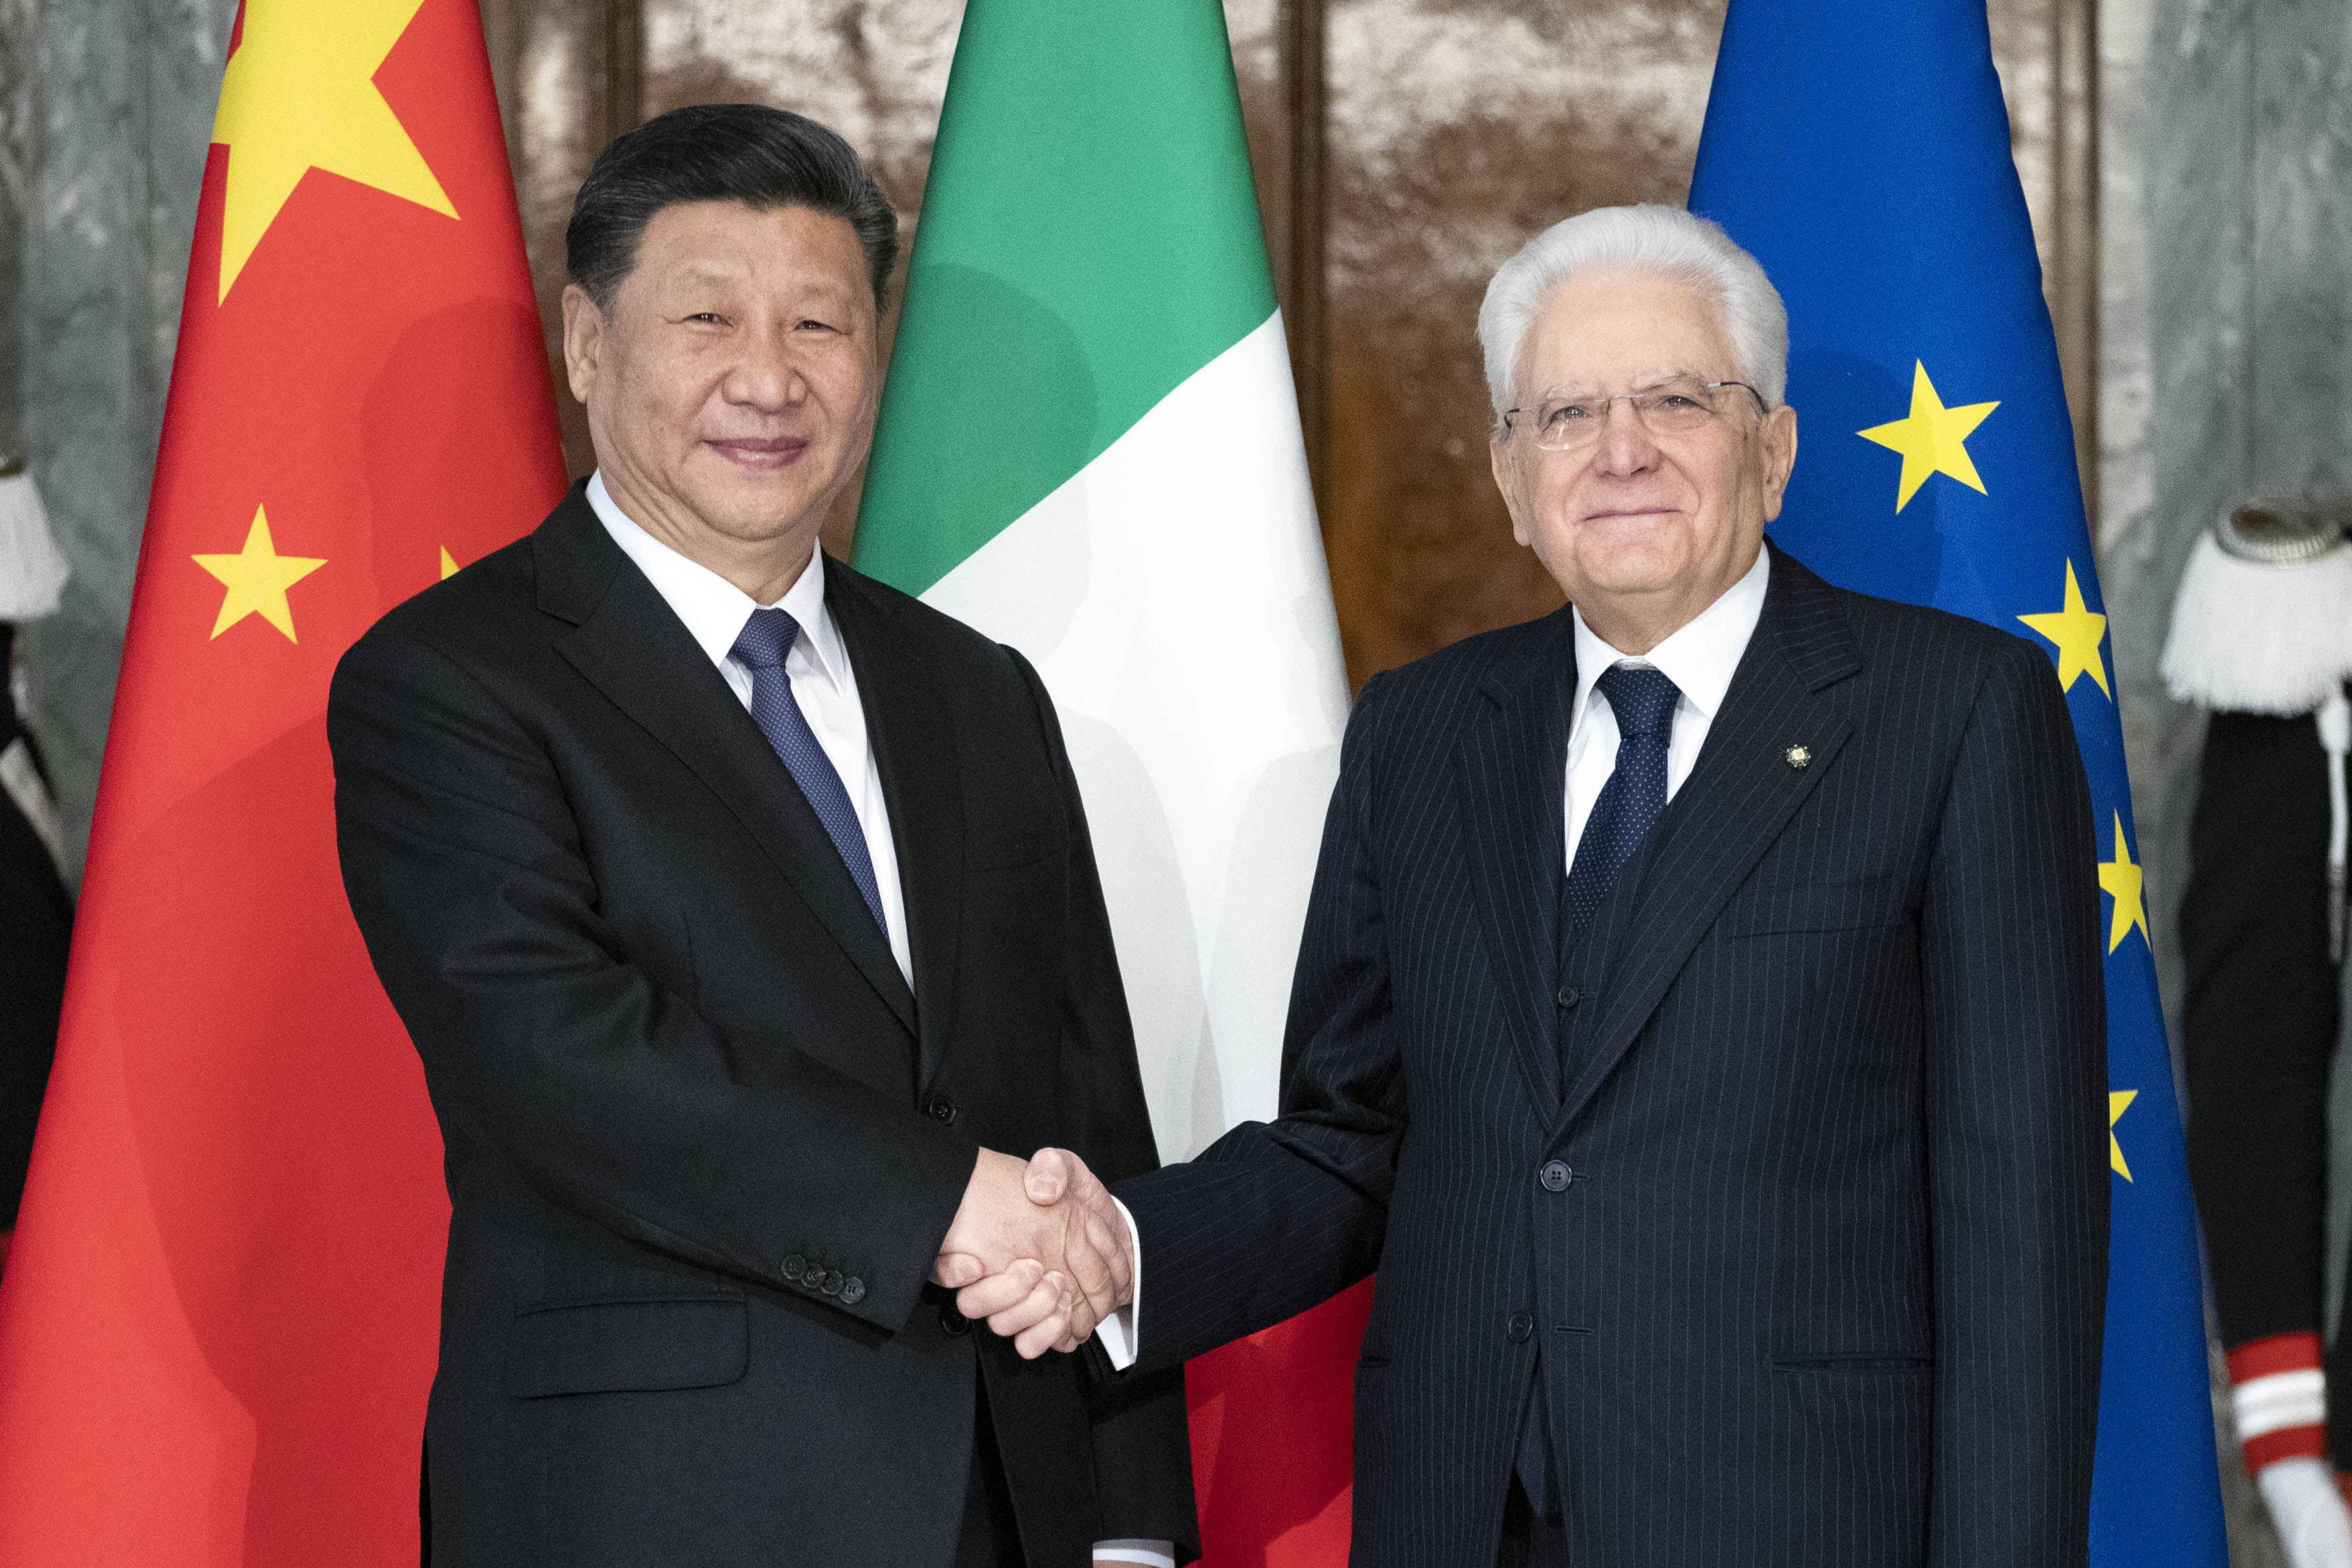 2019 Xi Jinping Italy And France Visit Wikipedia